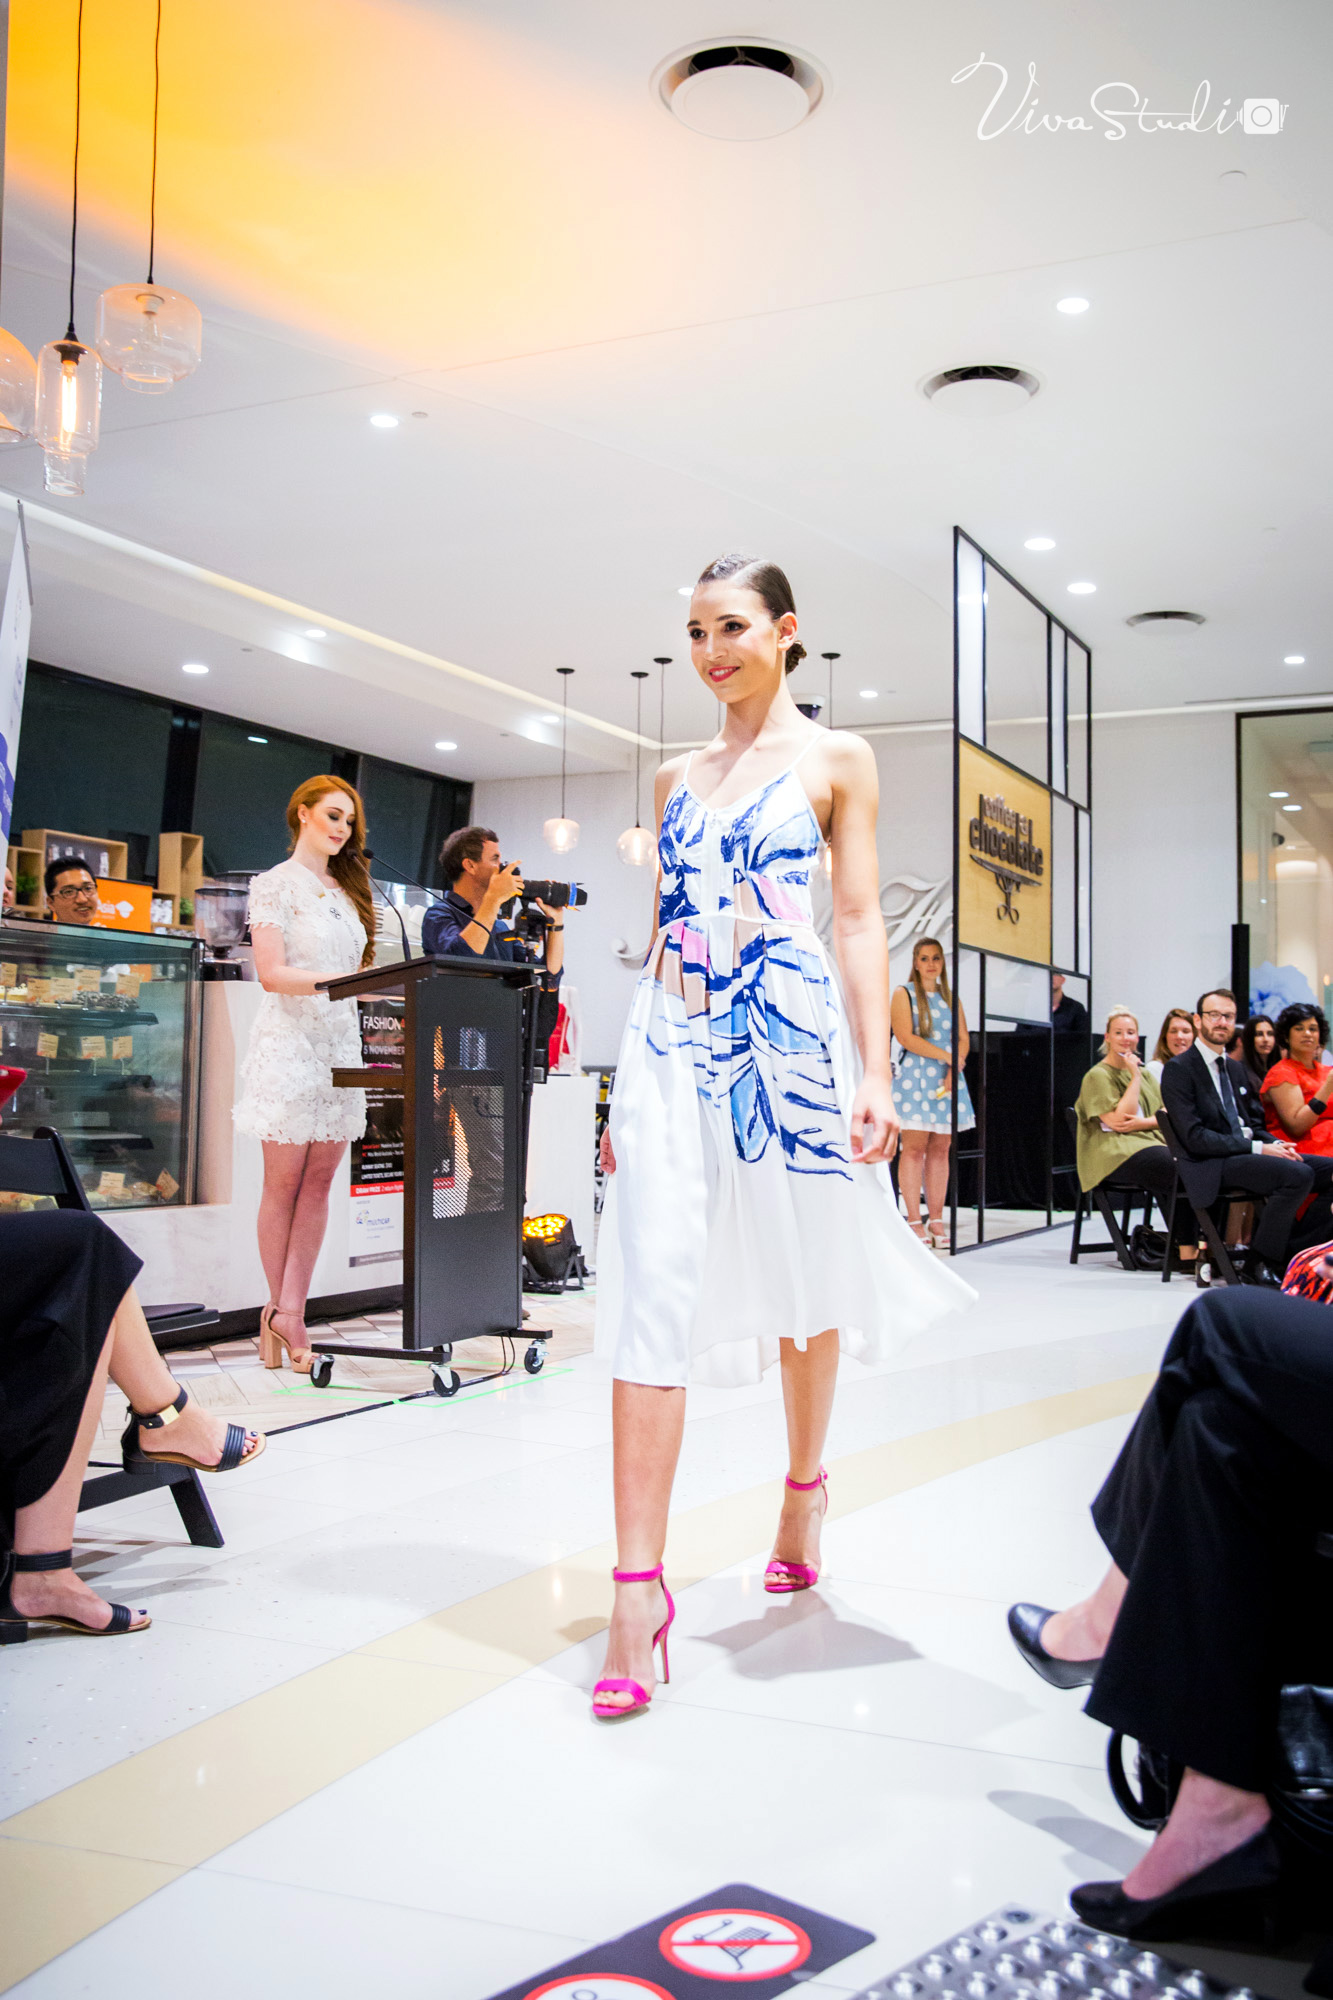 VivaStudio_Design_Photograpphy_Brisbane_Event_Fashionable_20151105_0160